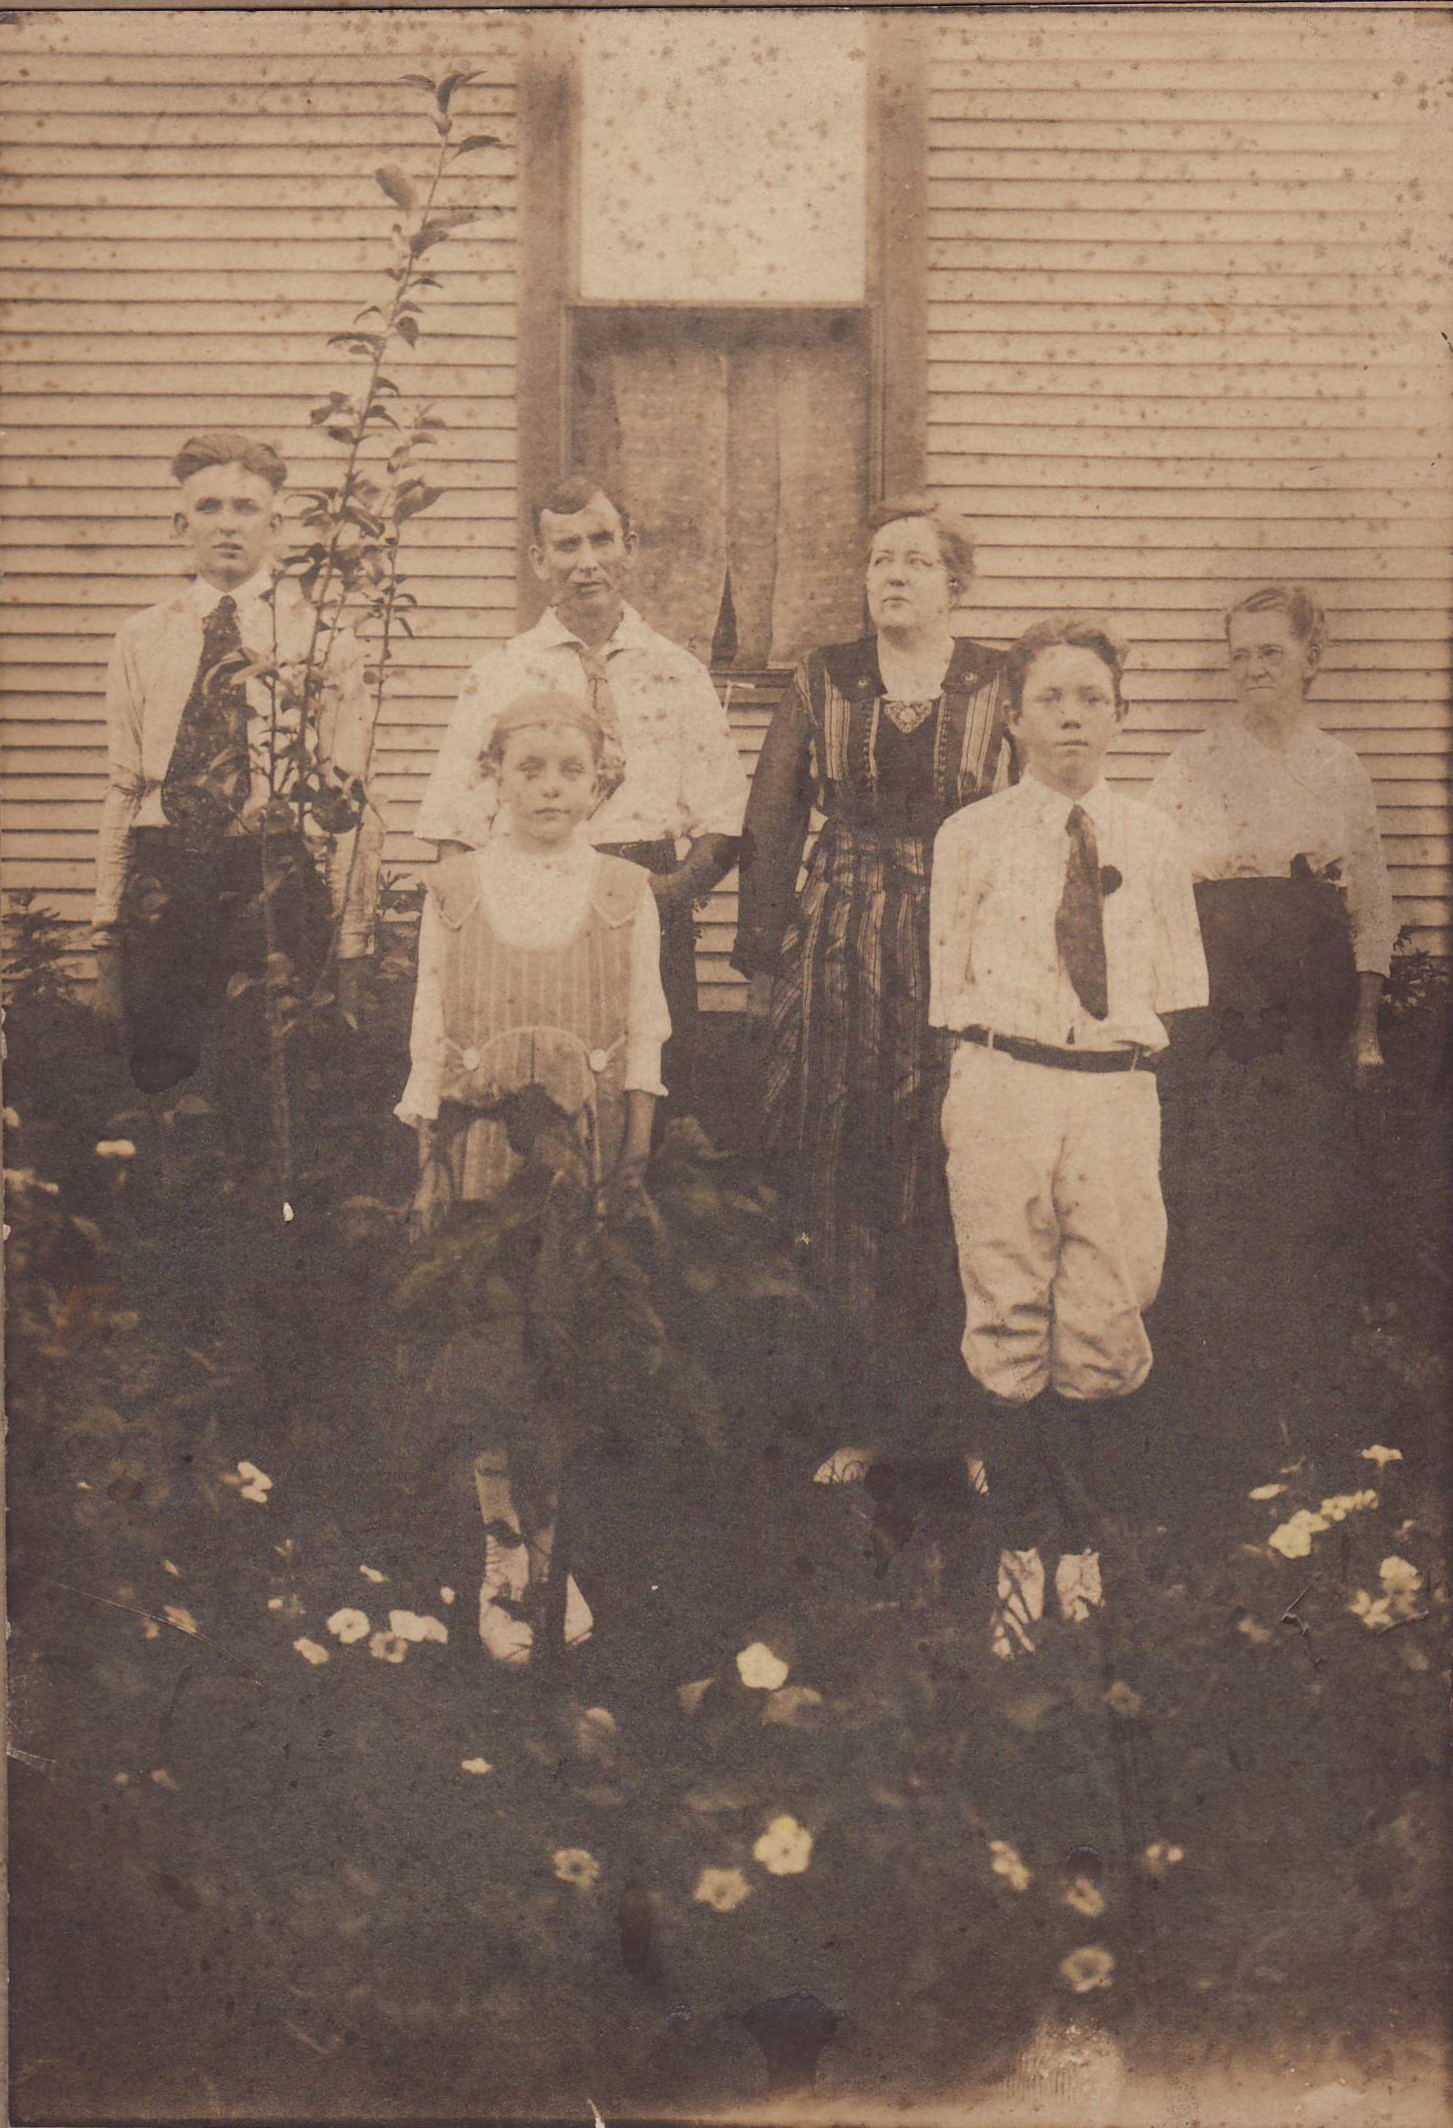 <I>Fox:</I> Fox Family in Memphis, Tennessee, 1353 Sardis St., about 1921